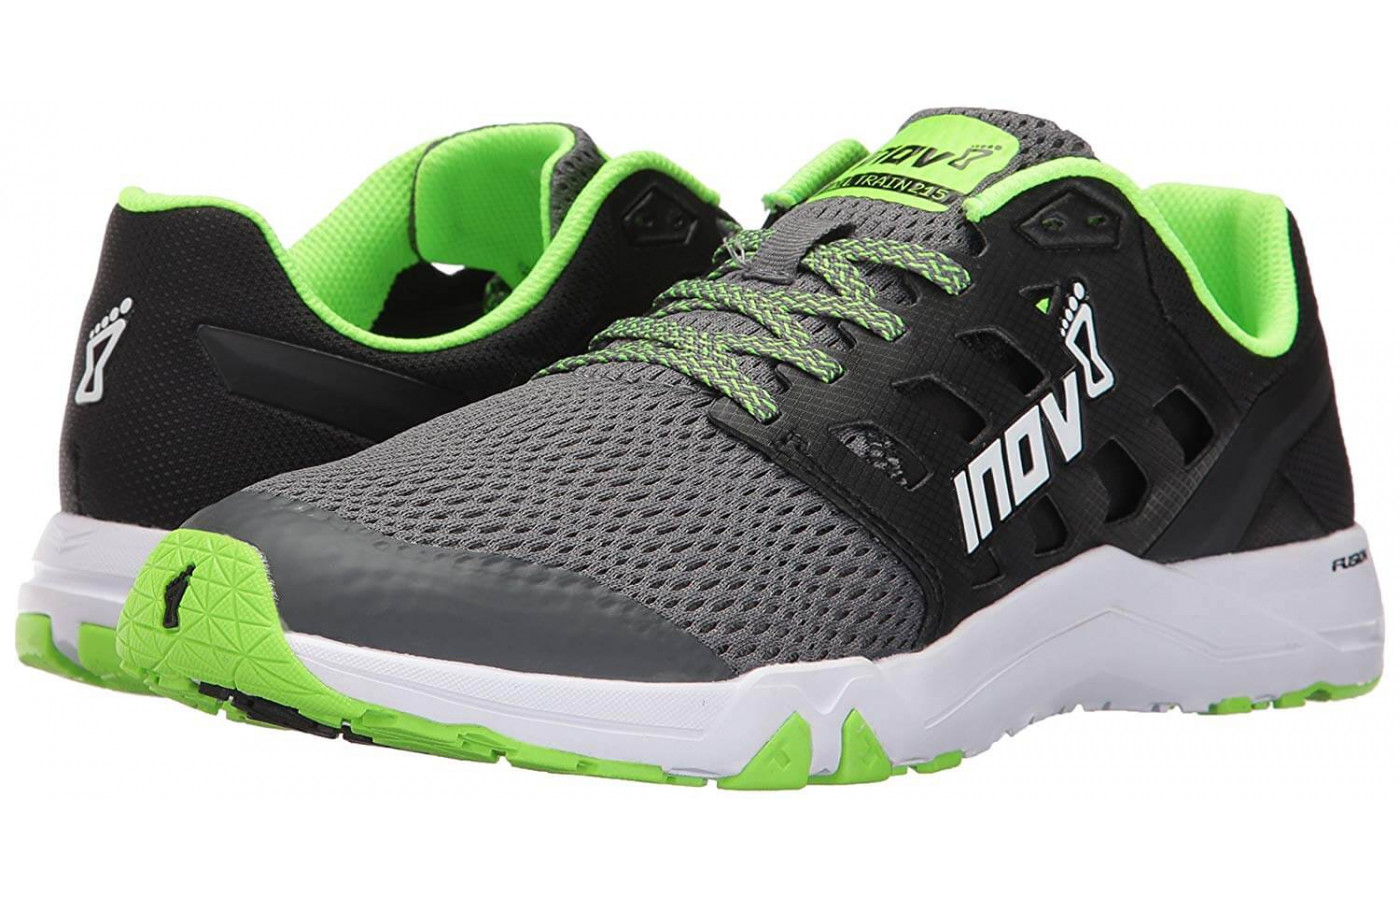 Inov-8 All Train 215 Pair